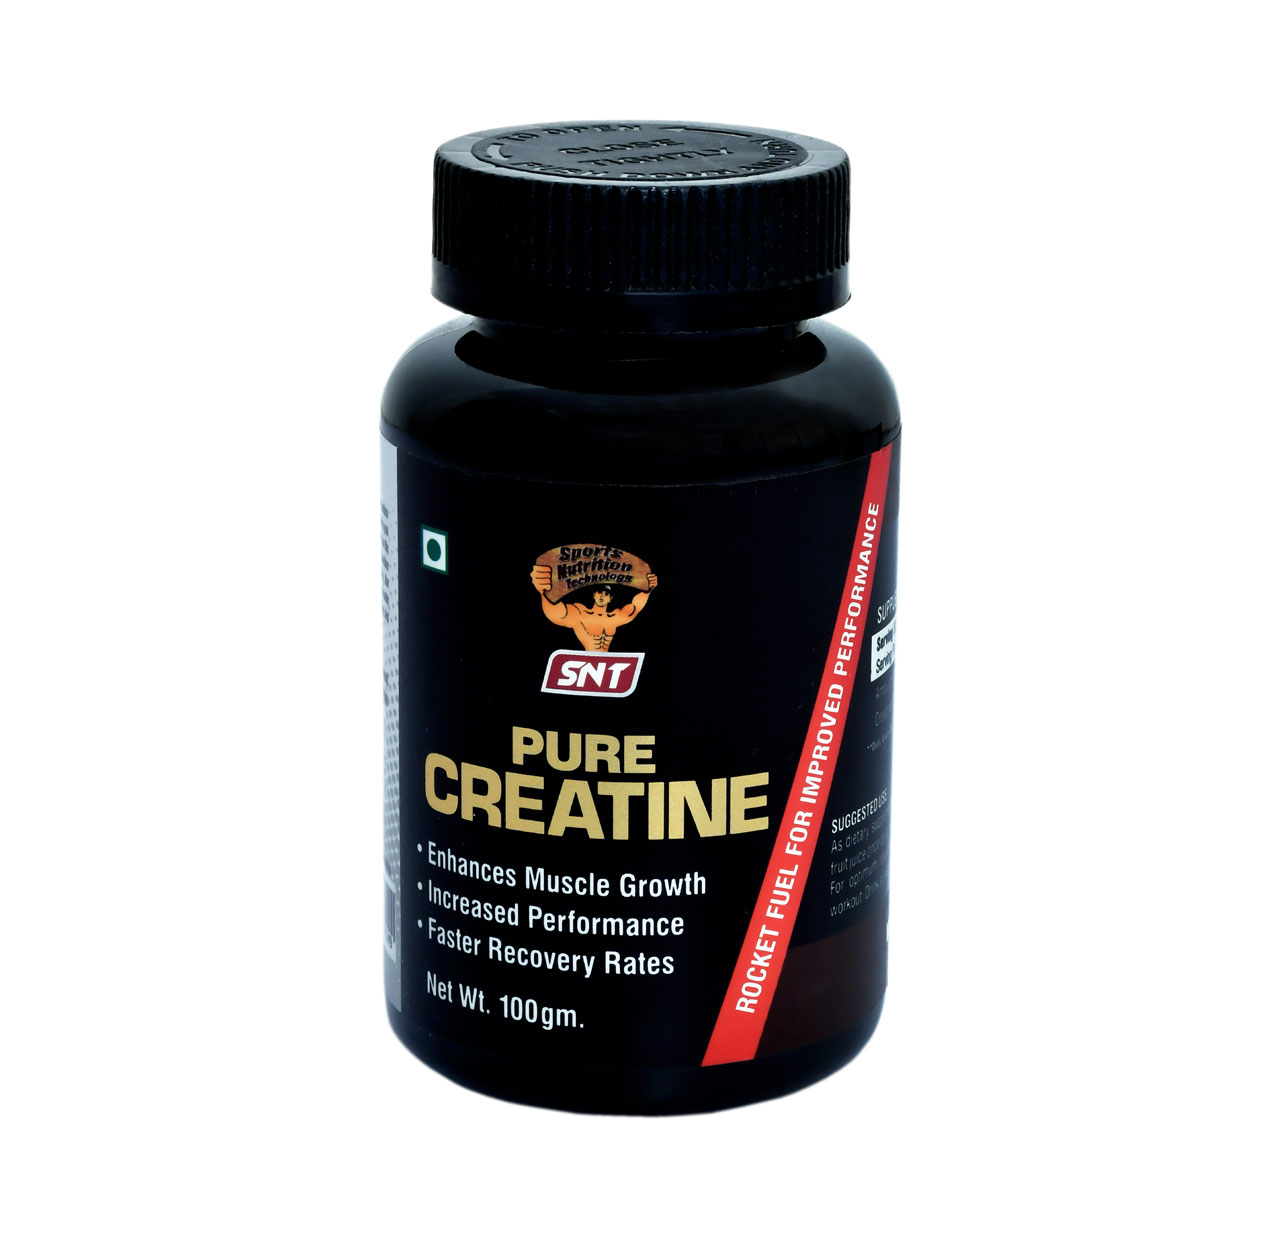 SNT Pure Creatine Enchances Muscle Growth – Snt